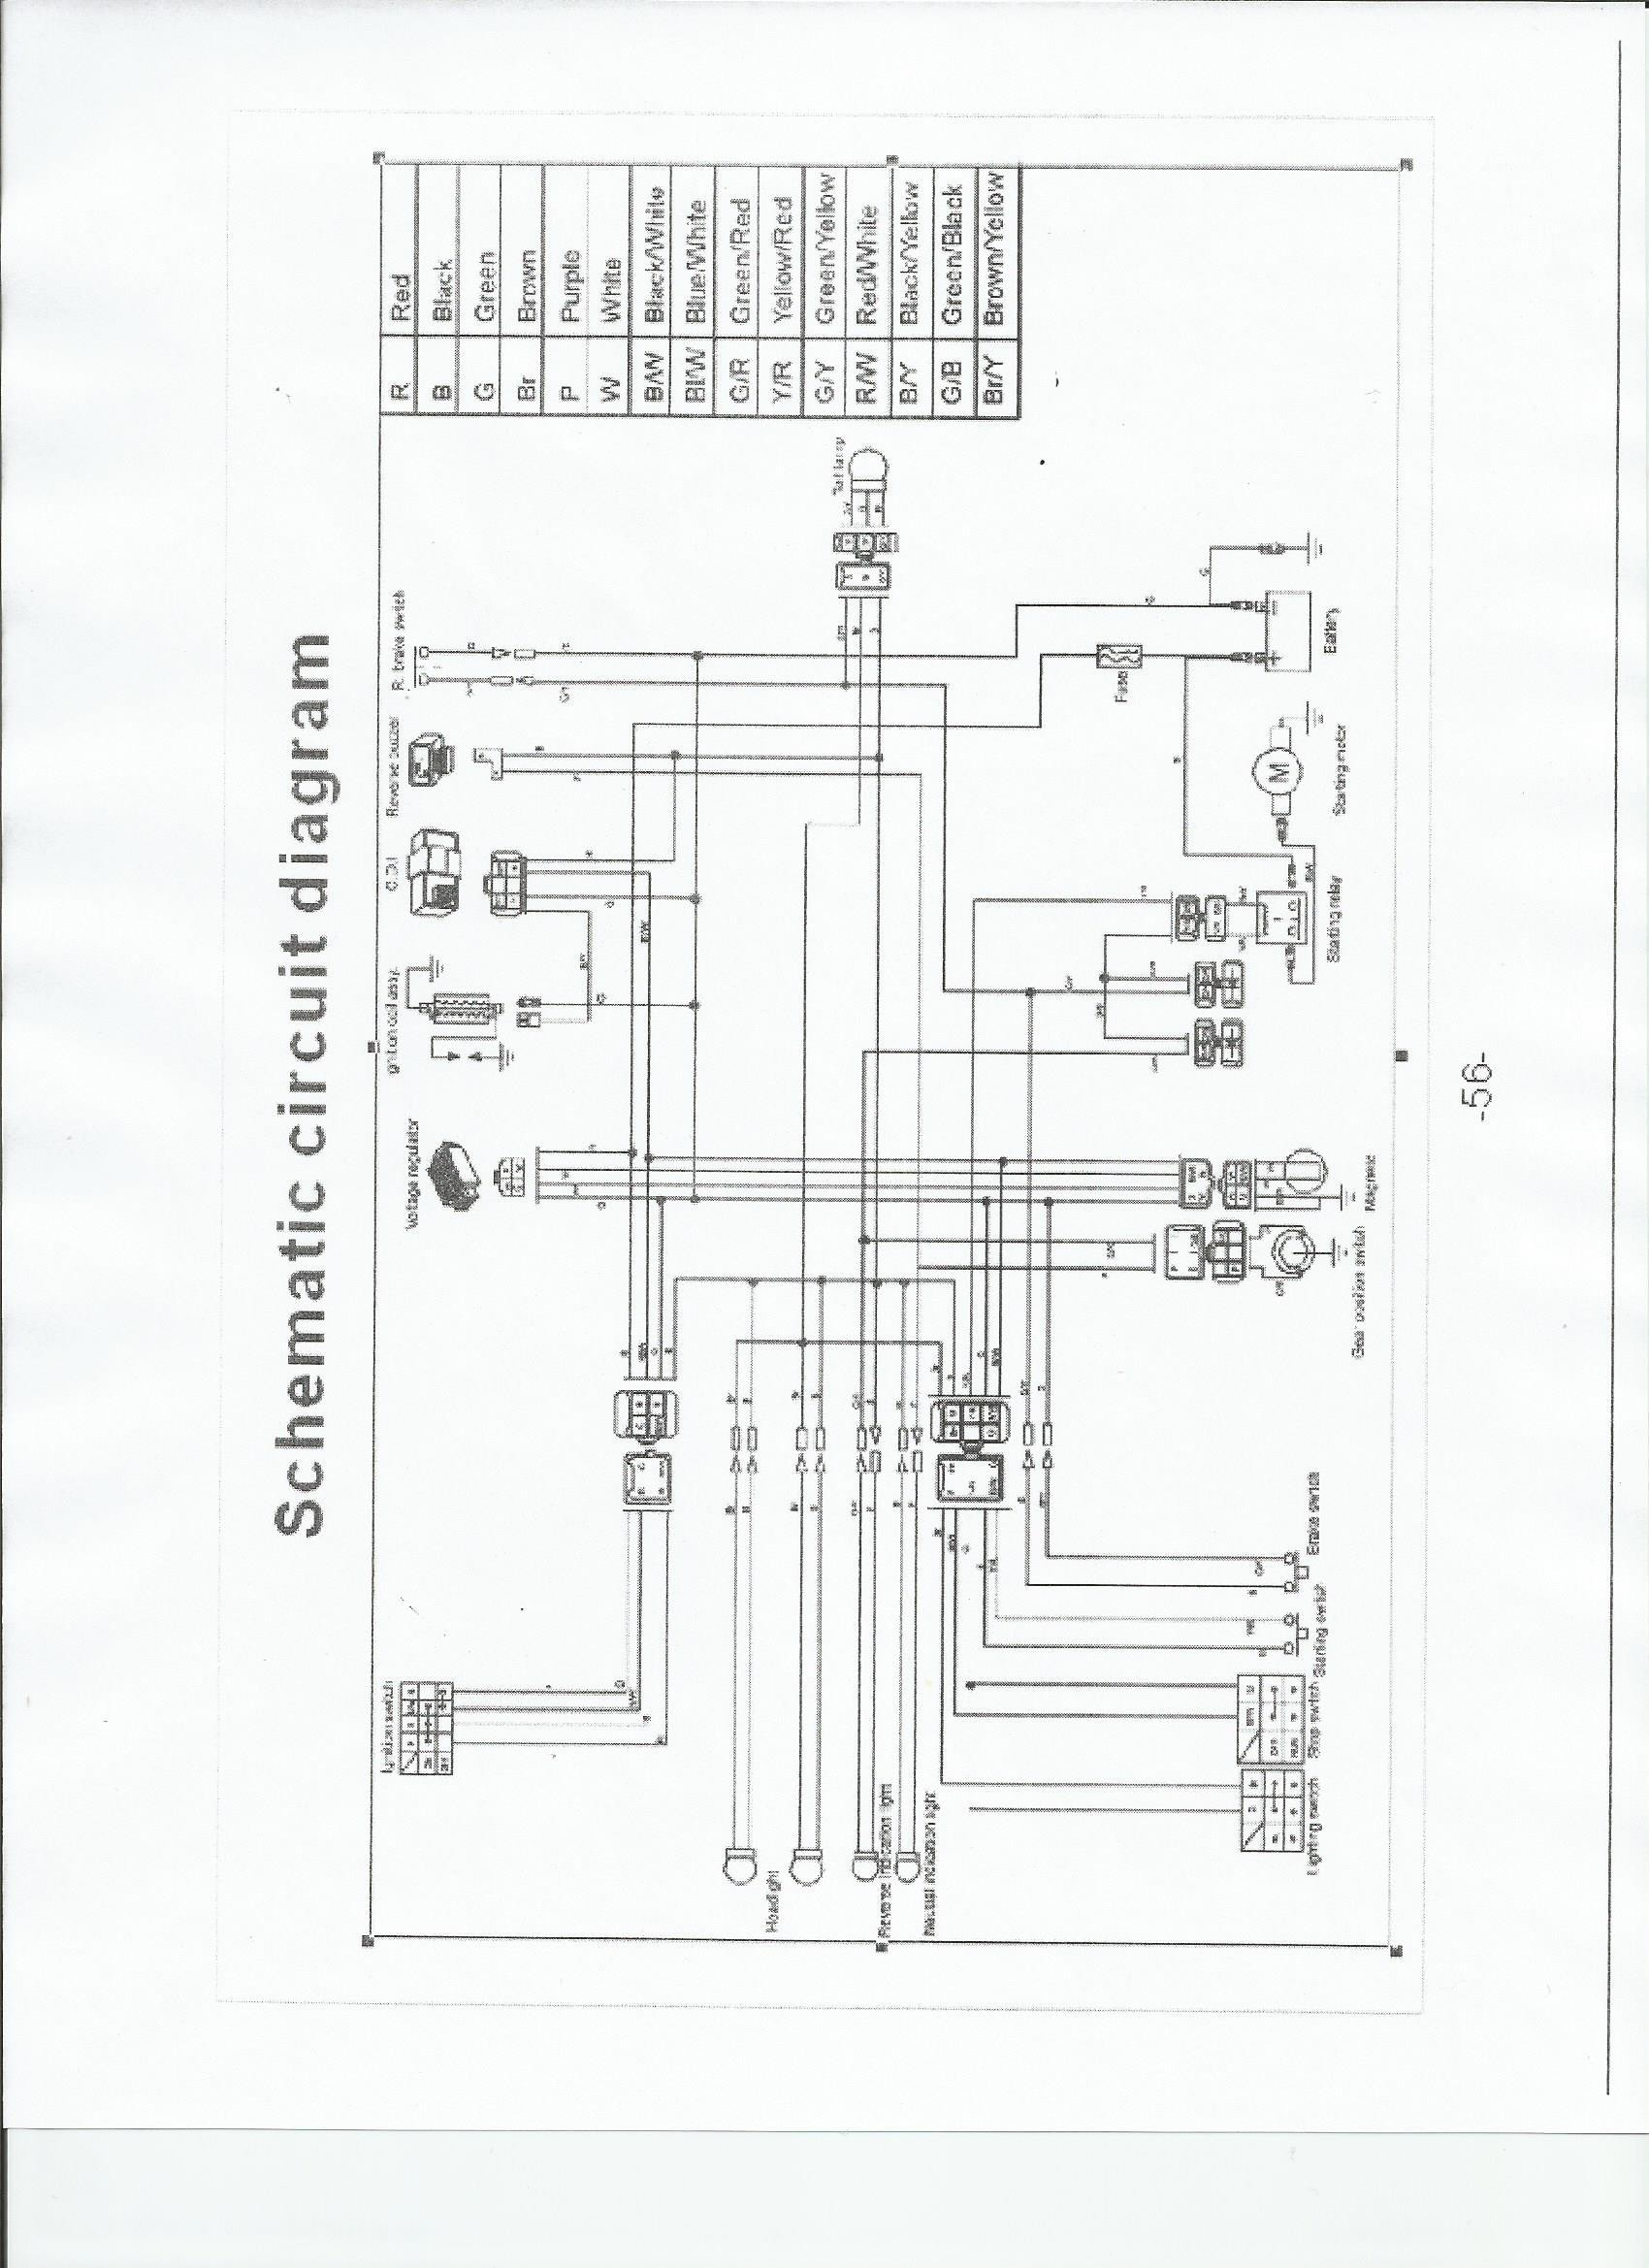 Chinese atv Wiring Schematic 110cc Bearcat 110cc atv Wiring Diagram Wiring Diagrams Schematics Of Chinese atv Wiring Schematic 110cc